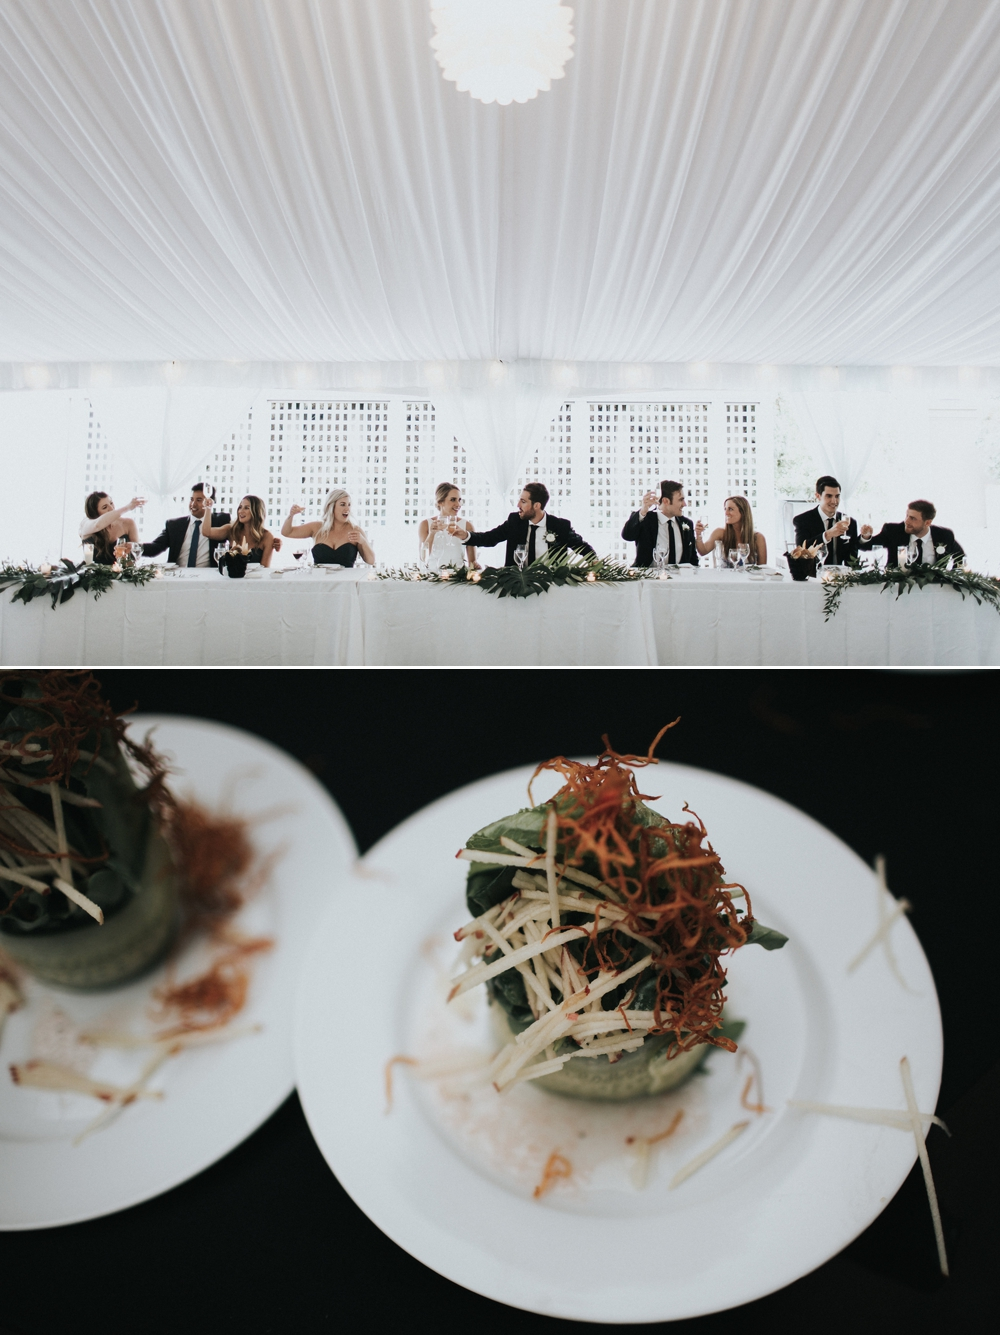 wedding-party-clinks-glasses-at-head-table